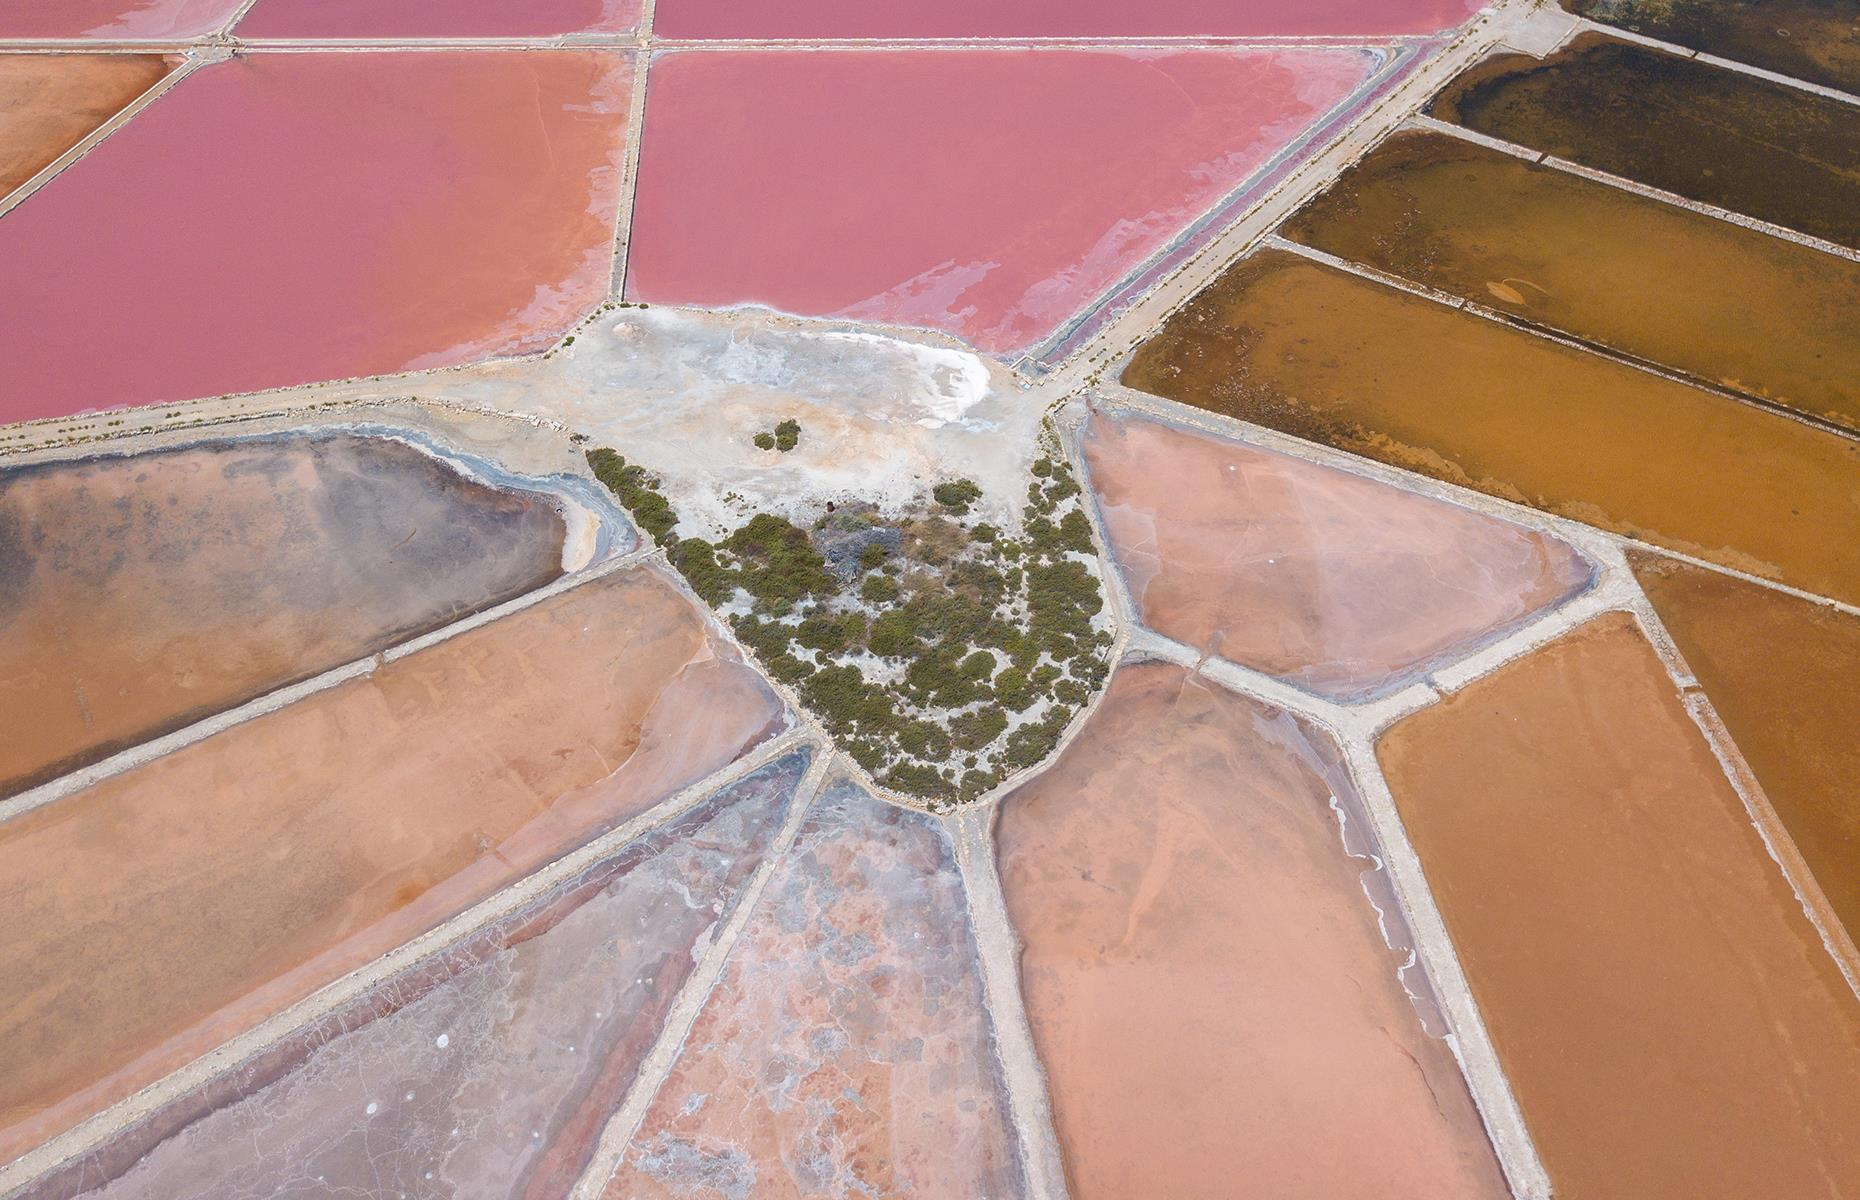 Slide 25 of 43: While it may look like a giant paint palette, this pink landscape is actually made up of salt flats and is situated in the seaside resort of Colonia de Sant Jordi in Mallorca's Ses Salines district. Salt is a major export here and a great source of local pride – a symbol of a salt mound even appears on the area's coat of arms. The colors – earthy pink, deep tan and rich nude – pop when captured from up high.